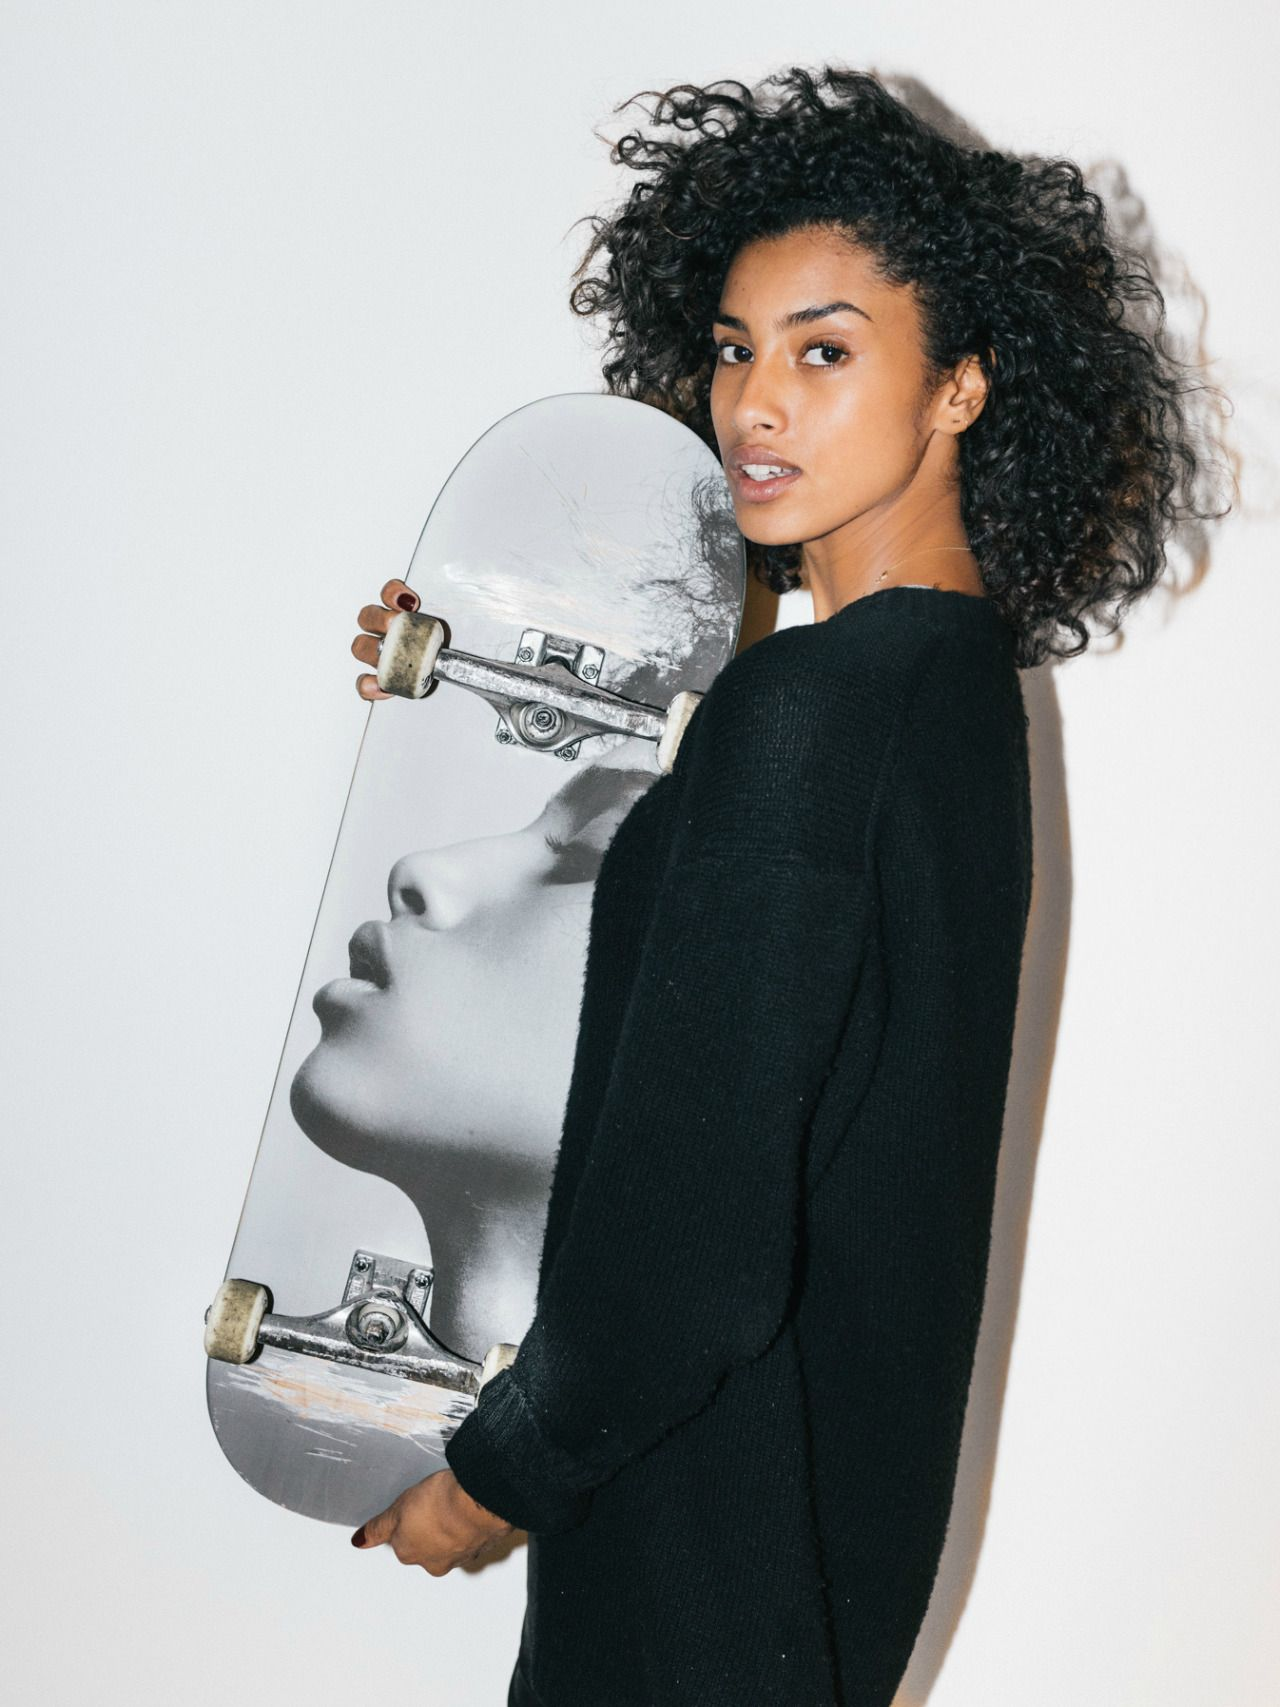 Supermodel Imaan Hammam's Face Graces a Limited Edition Skate Deck You might even think twice before boardsliding.